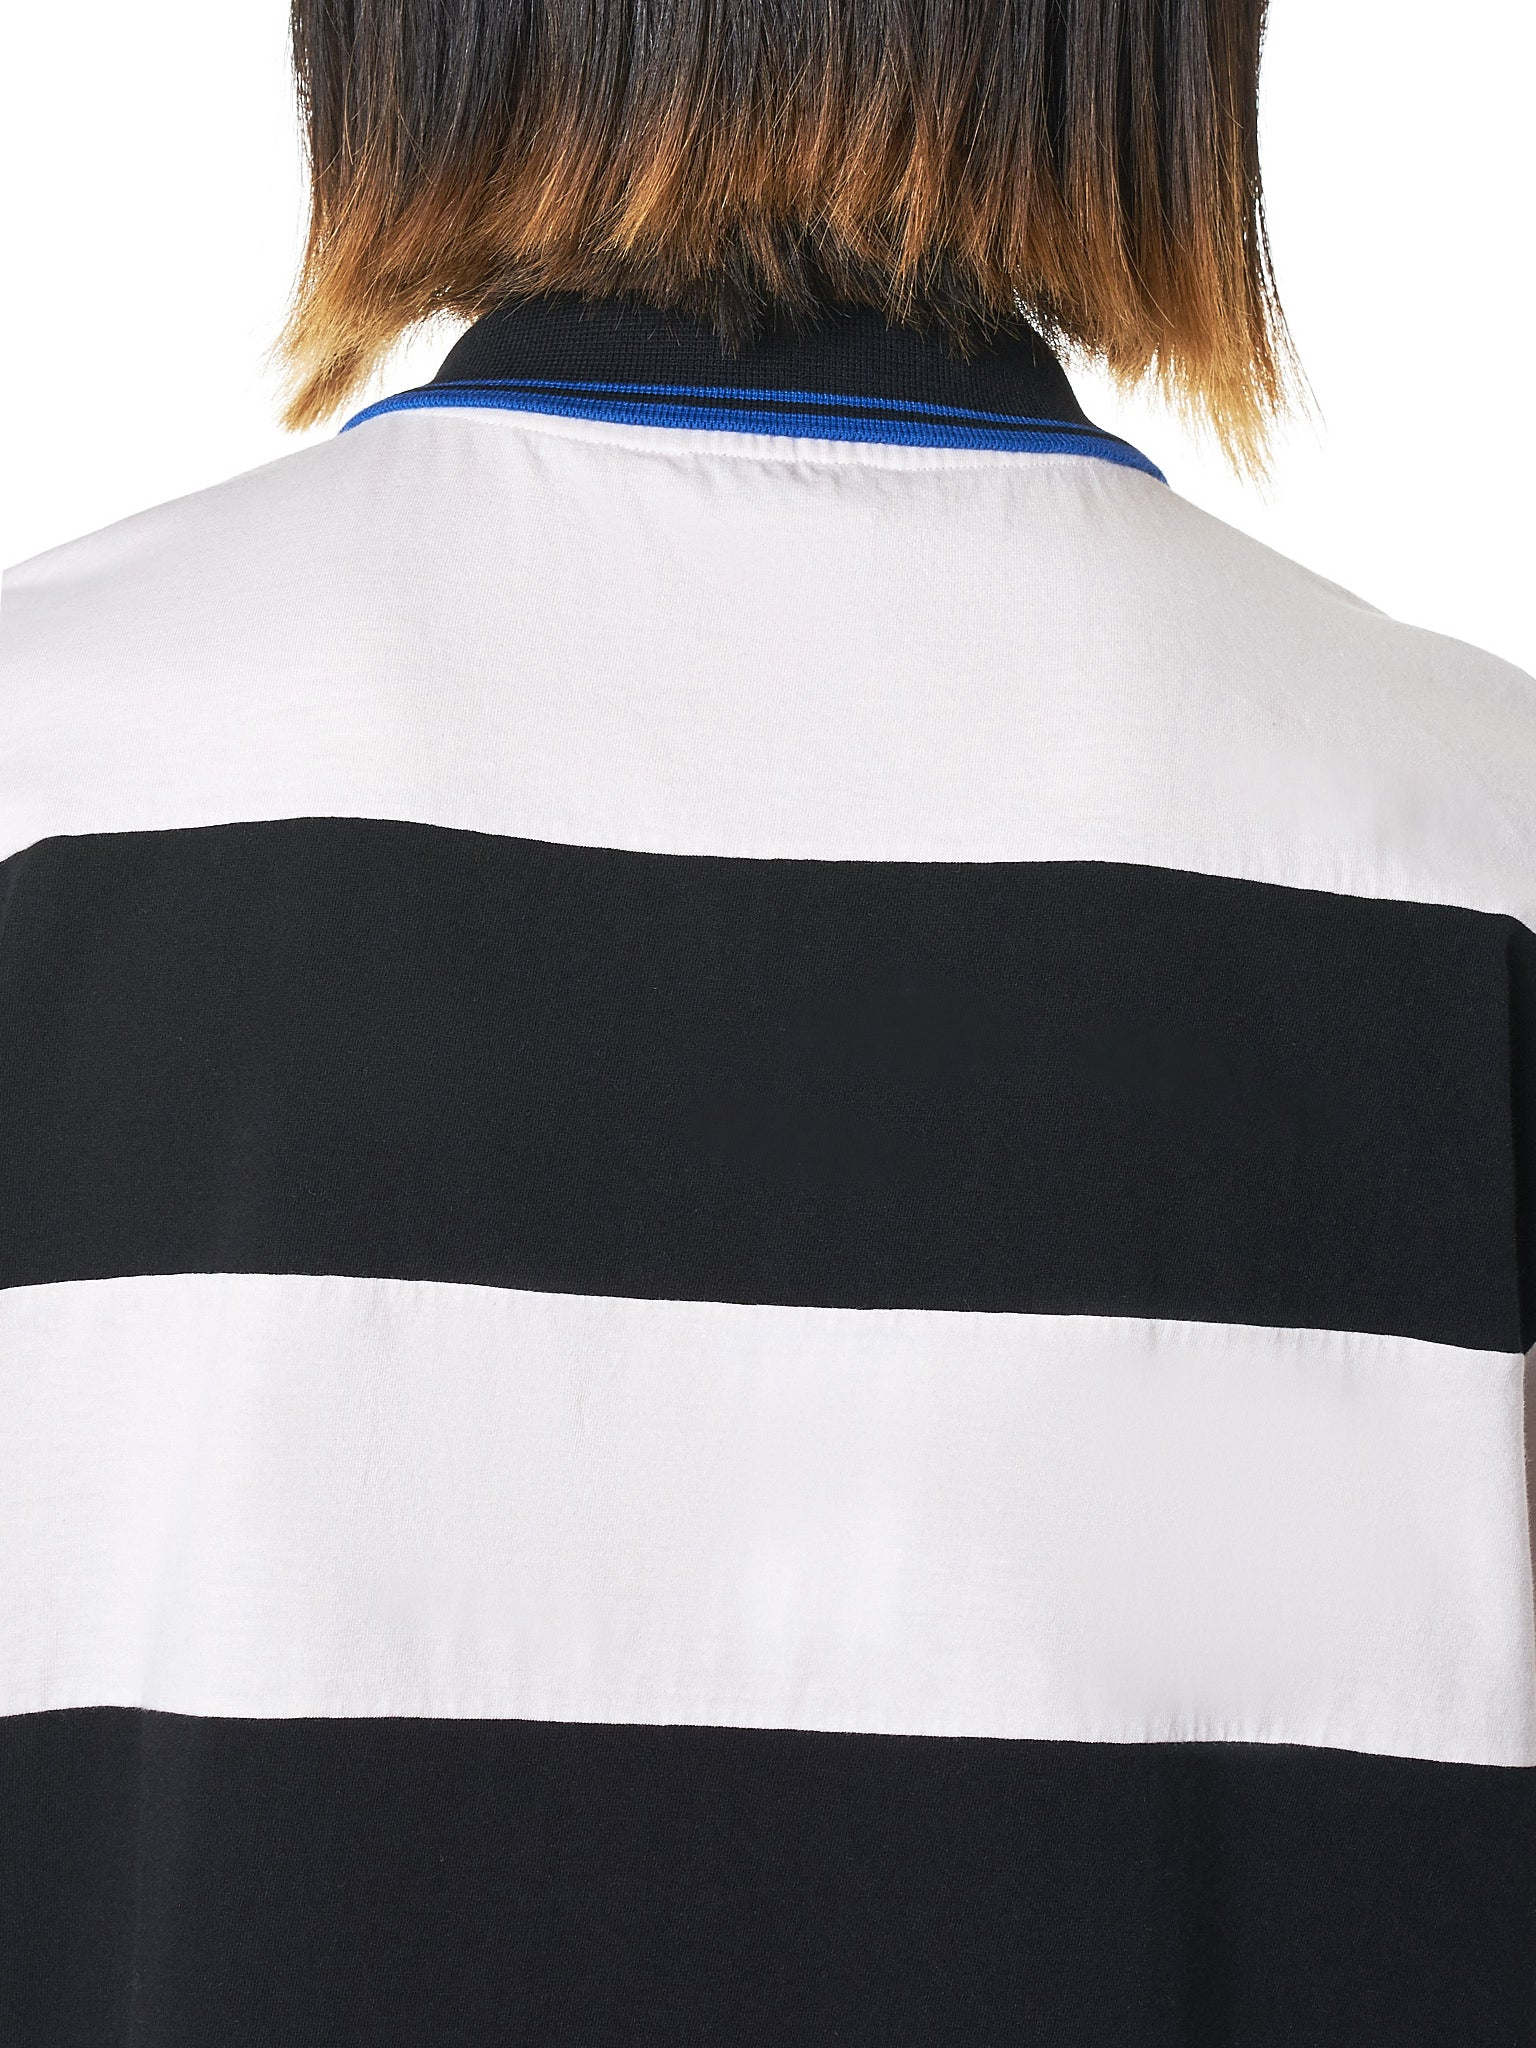 Marni Striped Polo - Hlorenzo Detail 2